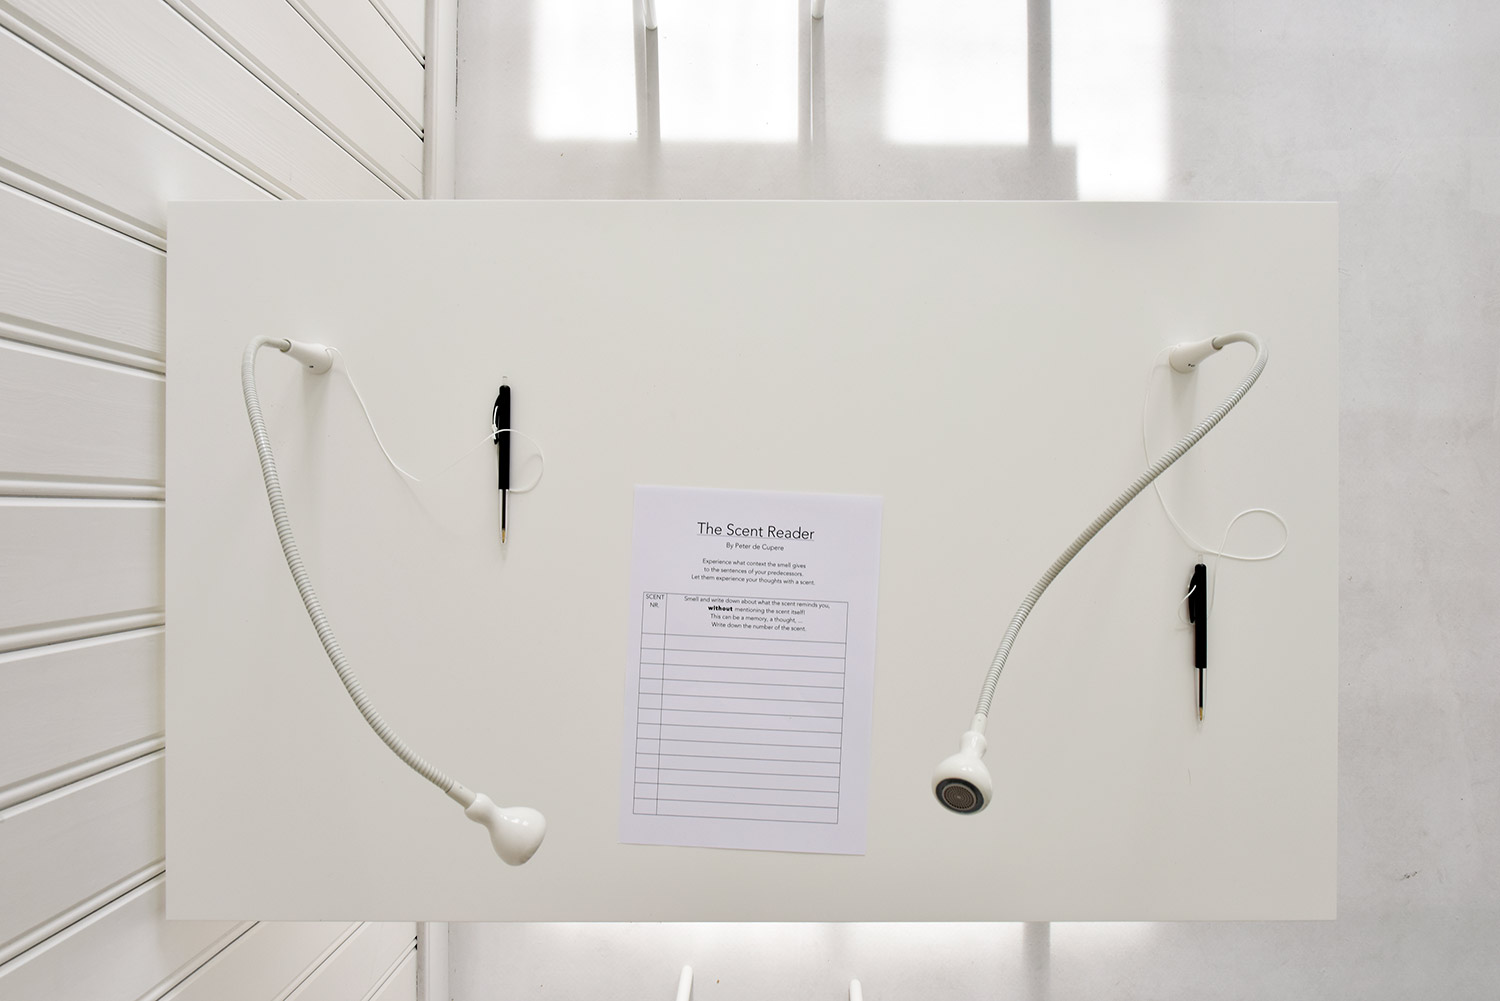 You are browsing images from the article: The Scent Reader in Kunstenfestival Watou